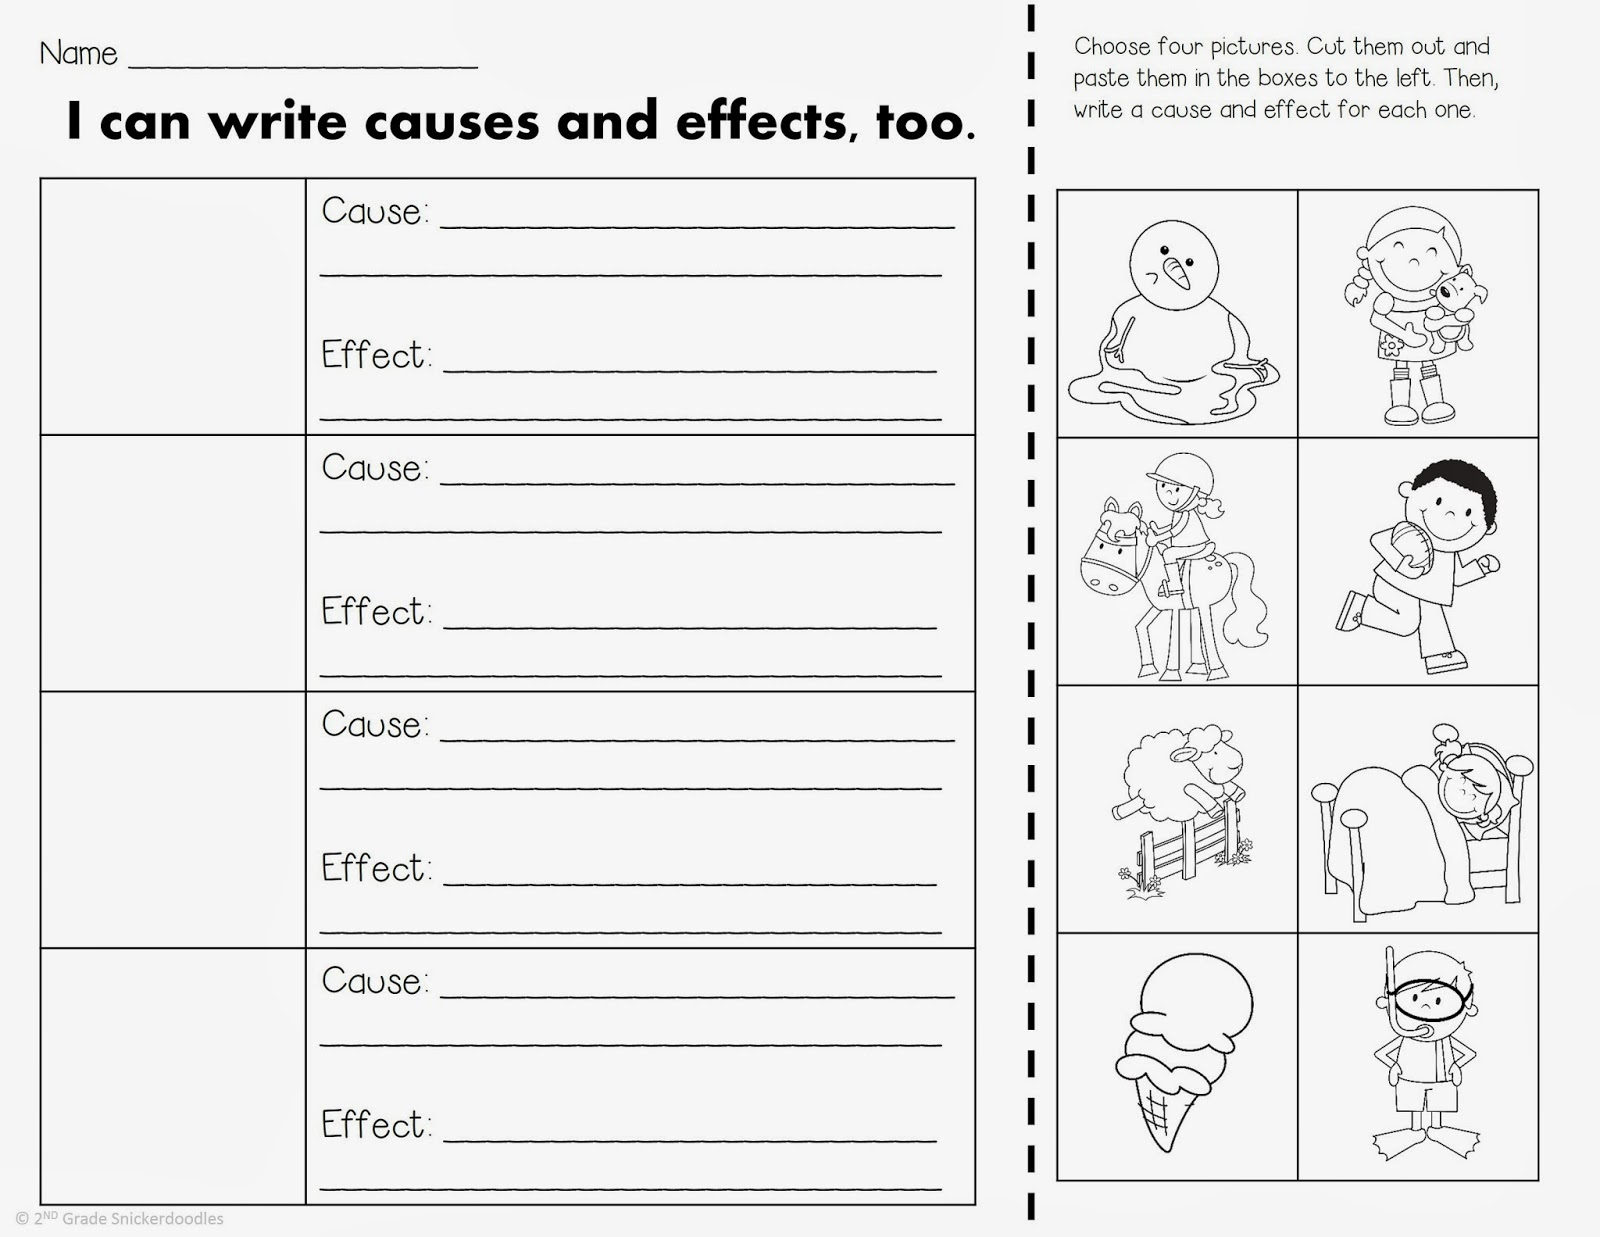 hight resolution of Cause And Effect Worksheet For 7th Grade   Printable Worksheets and  Activities for Teachers